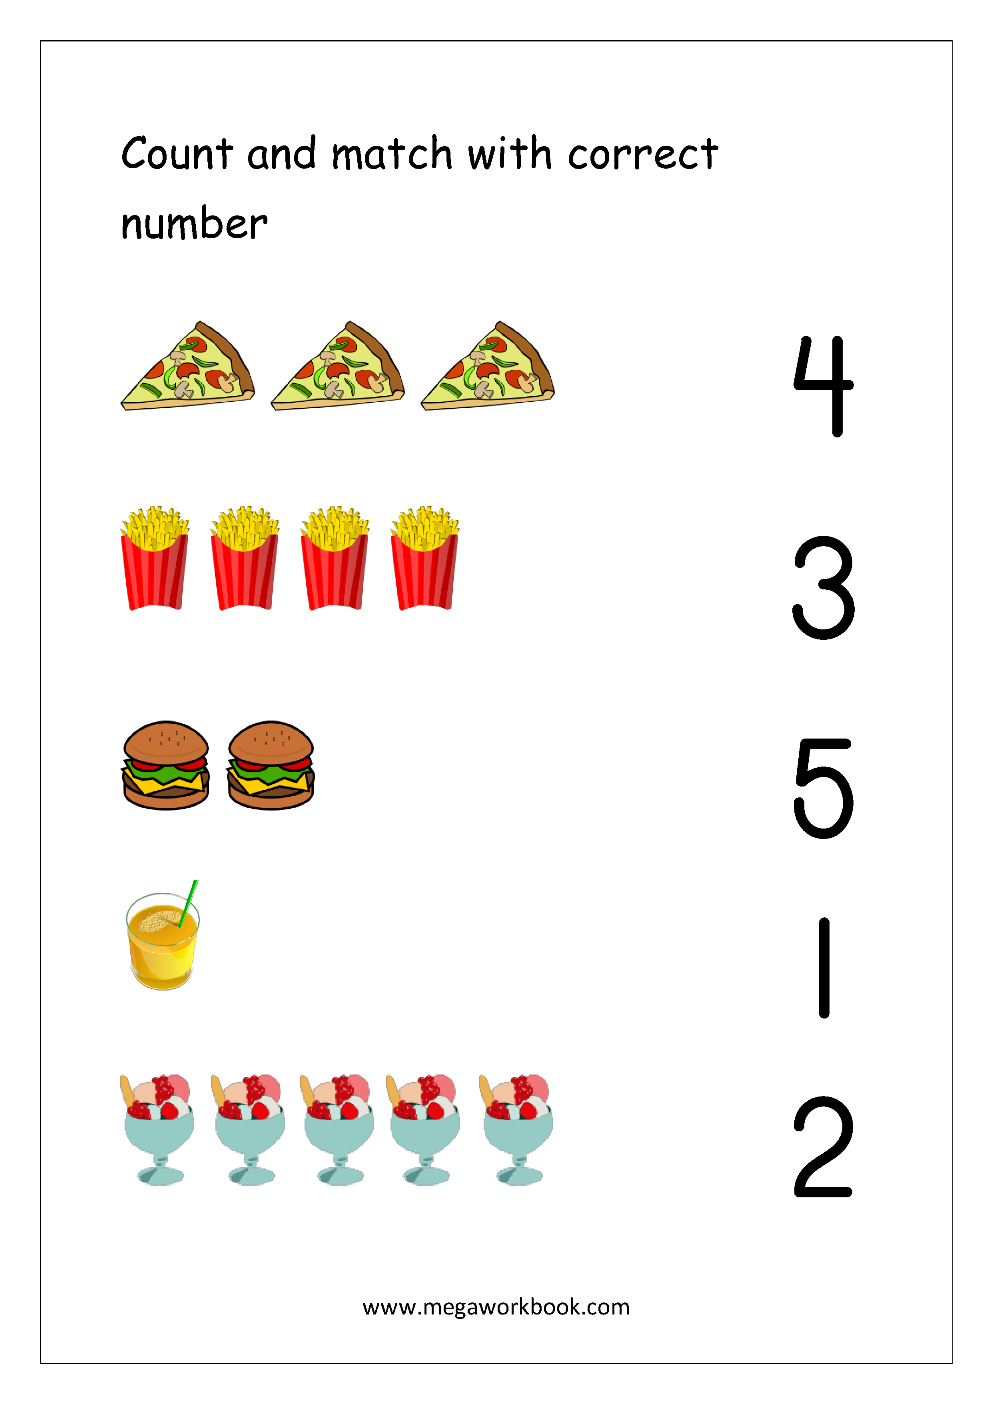 Free Printable Number Matching Worksheets For Kindergarten And - Free Printable 5 W's Worksheets